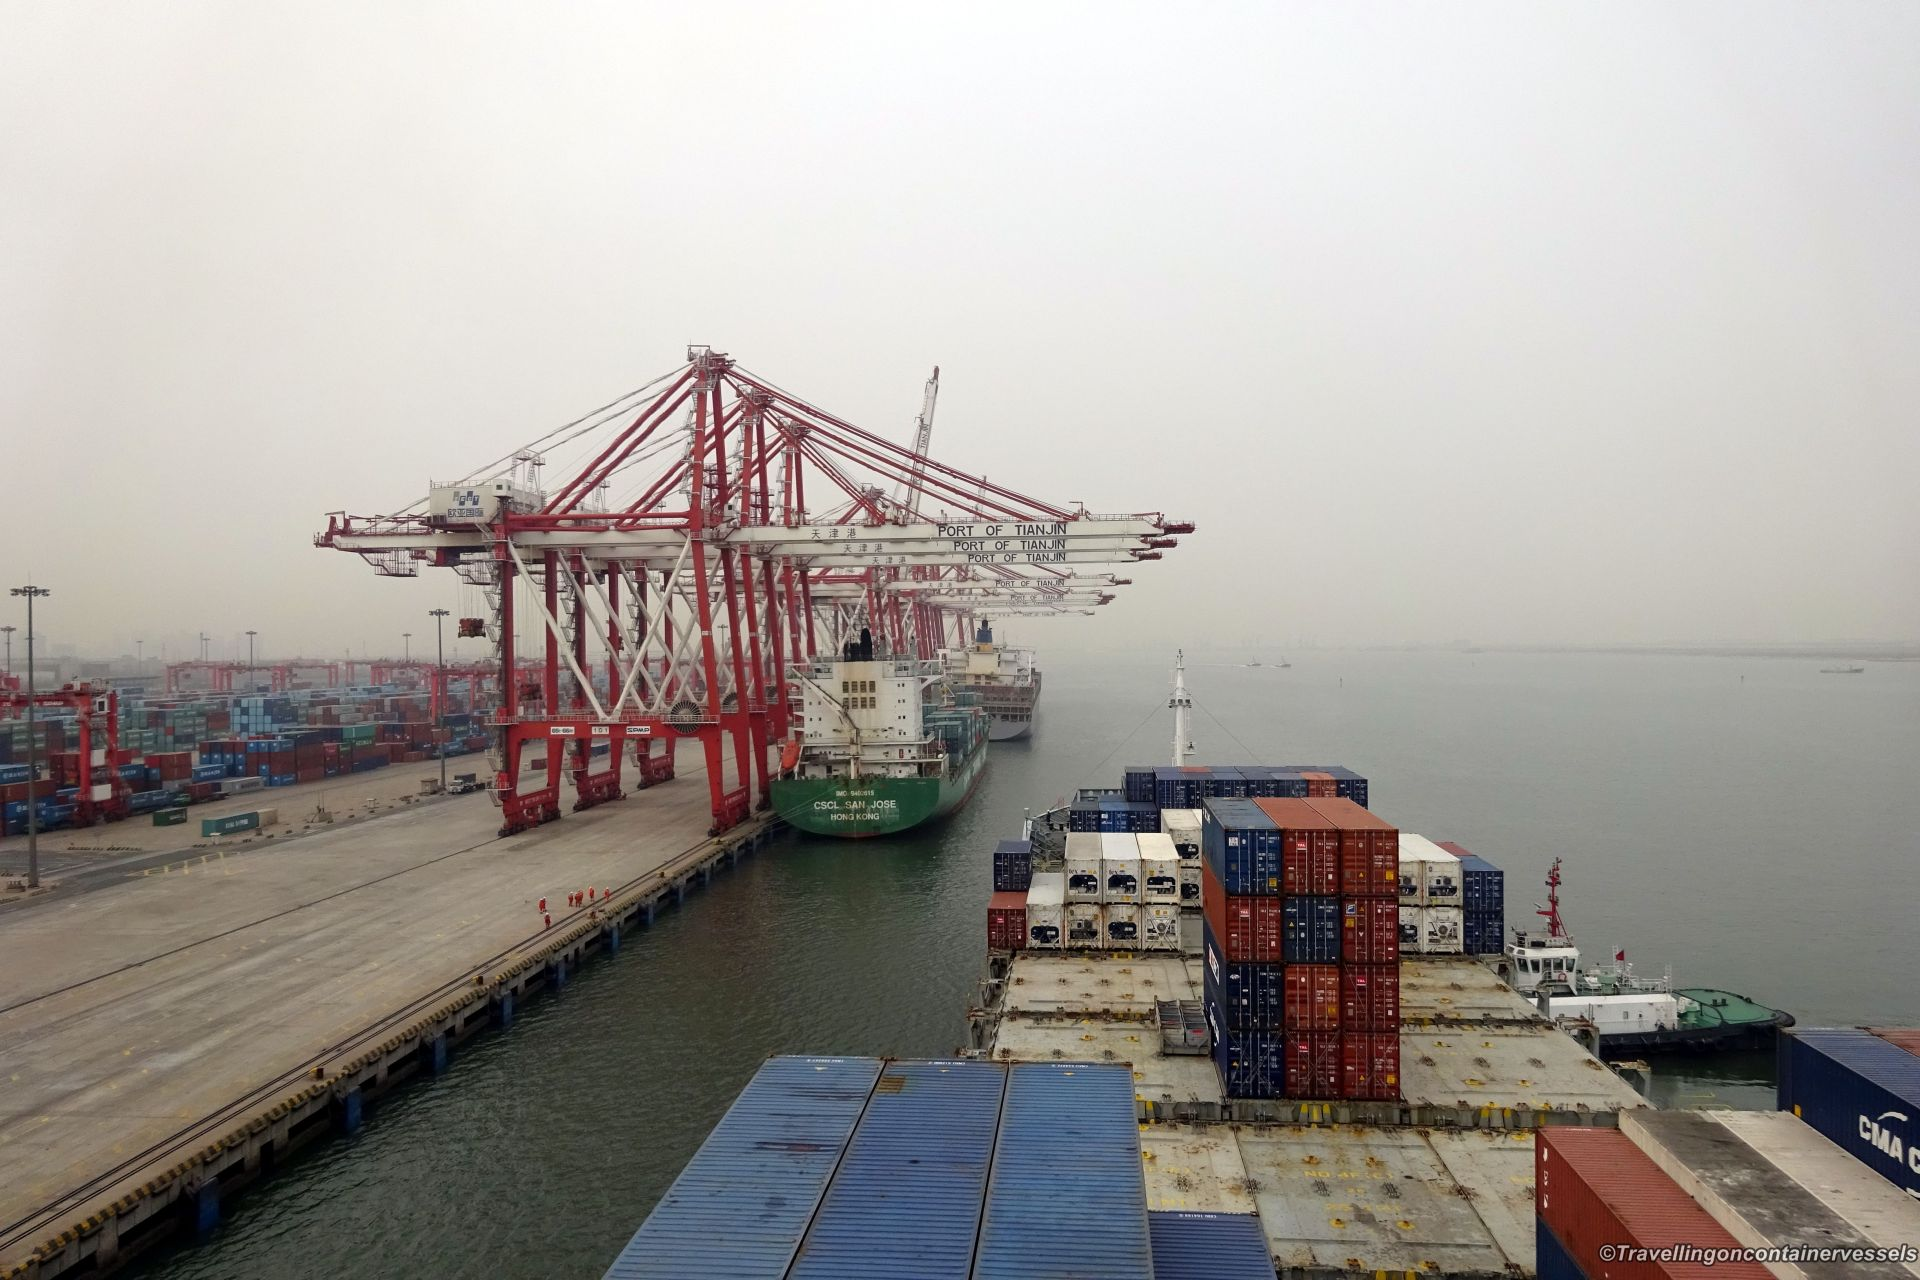 Entering The Port Of Tianjin China Travelling On Container Vessels